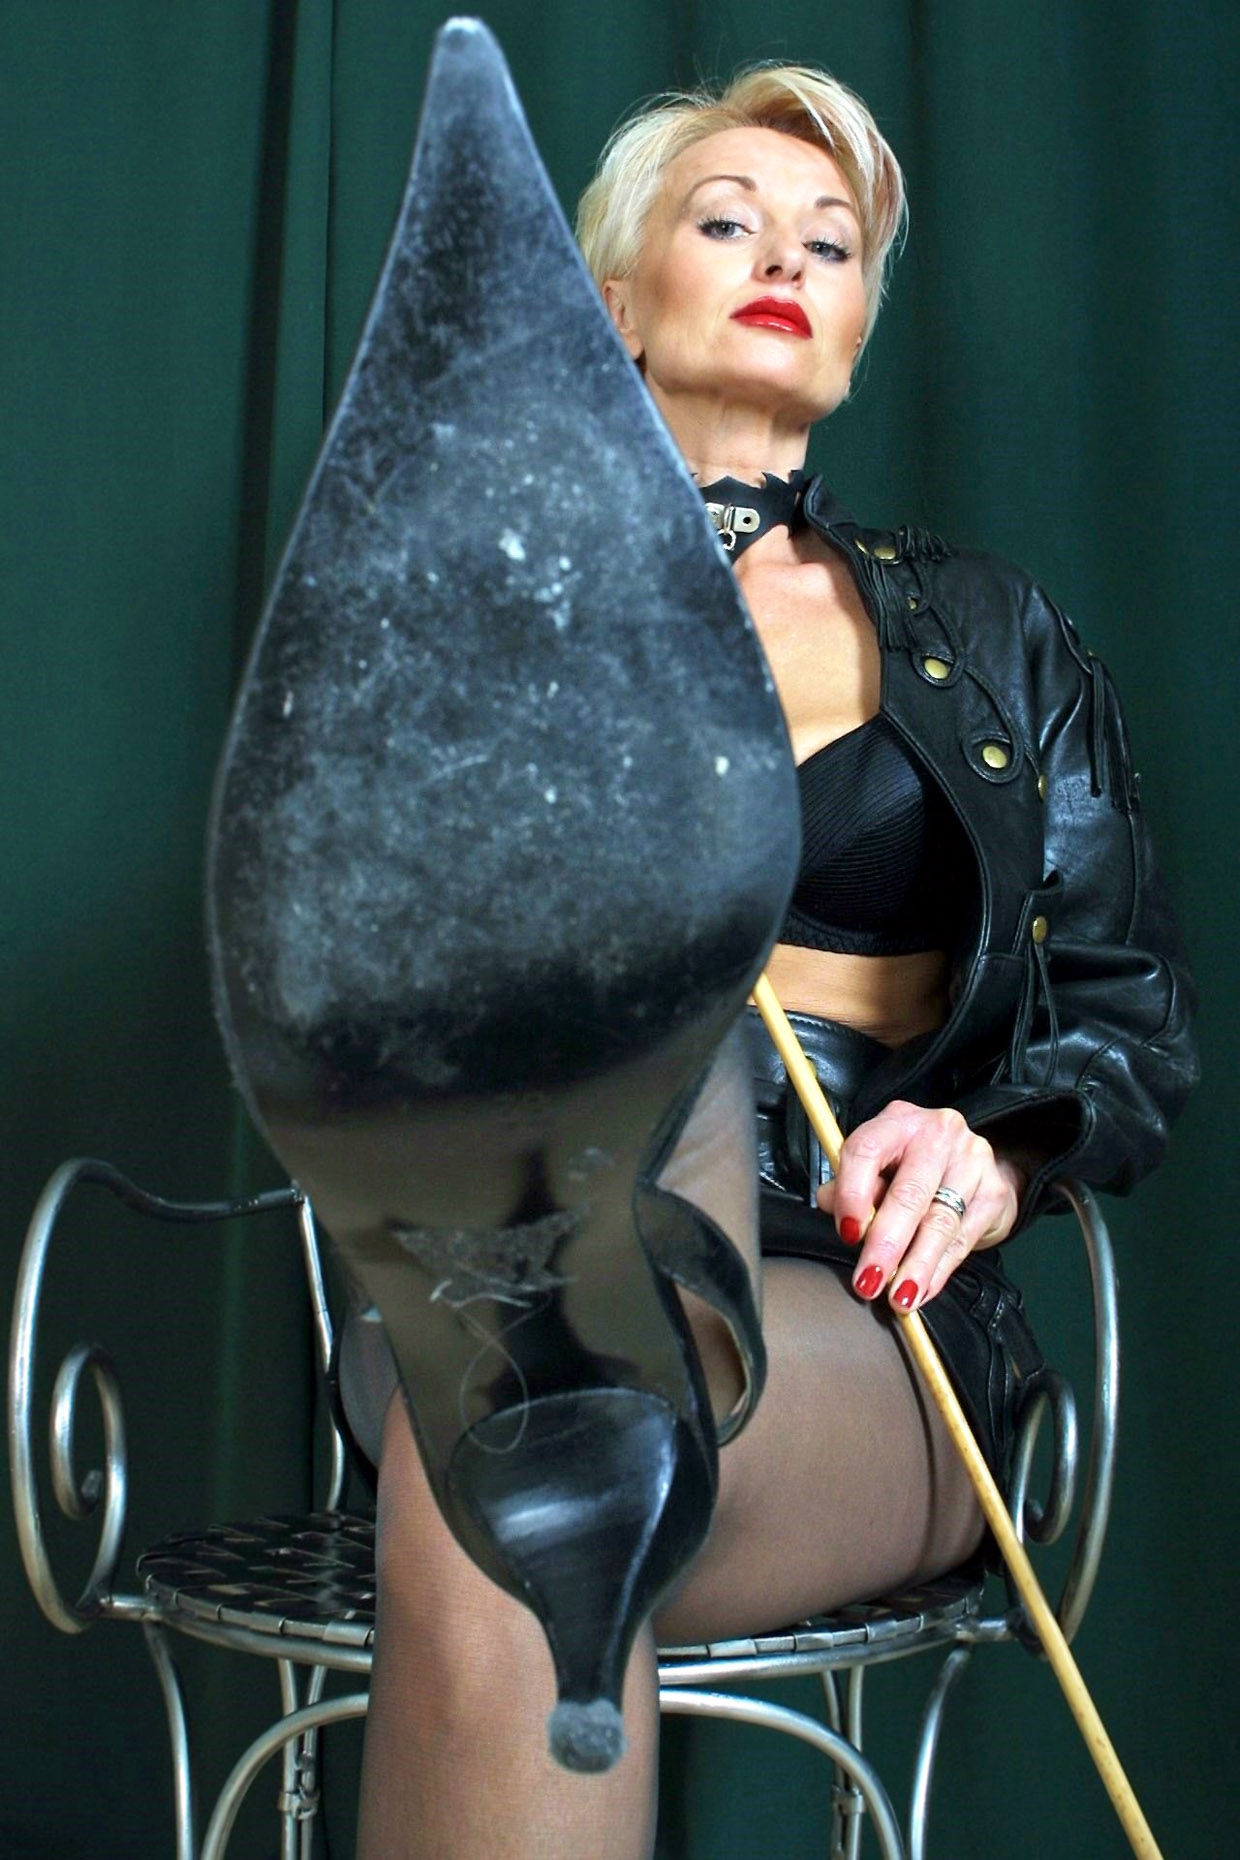 Mature dominatrix photos